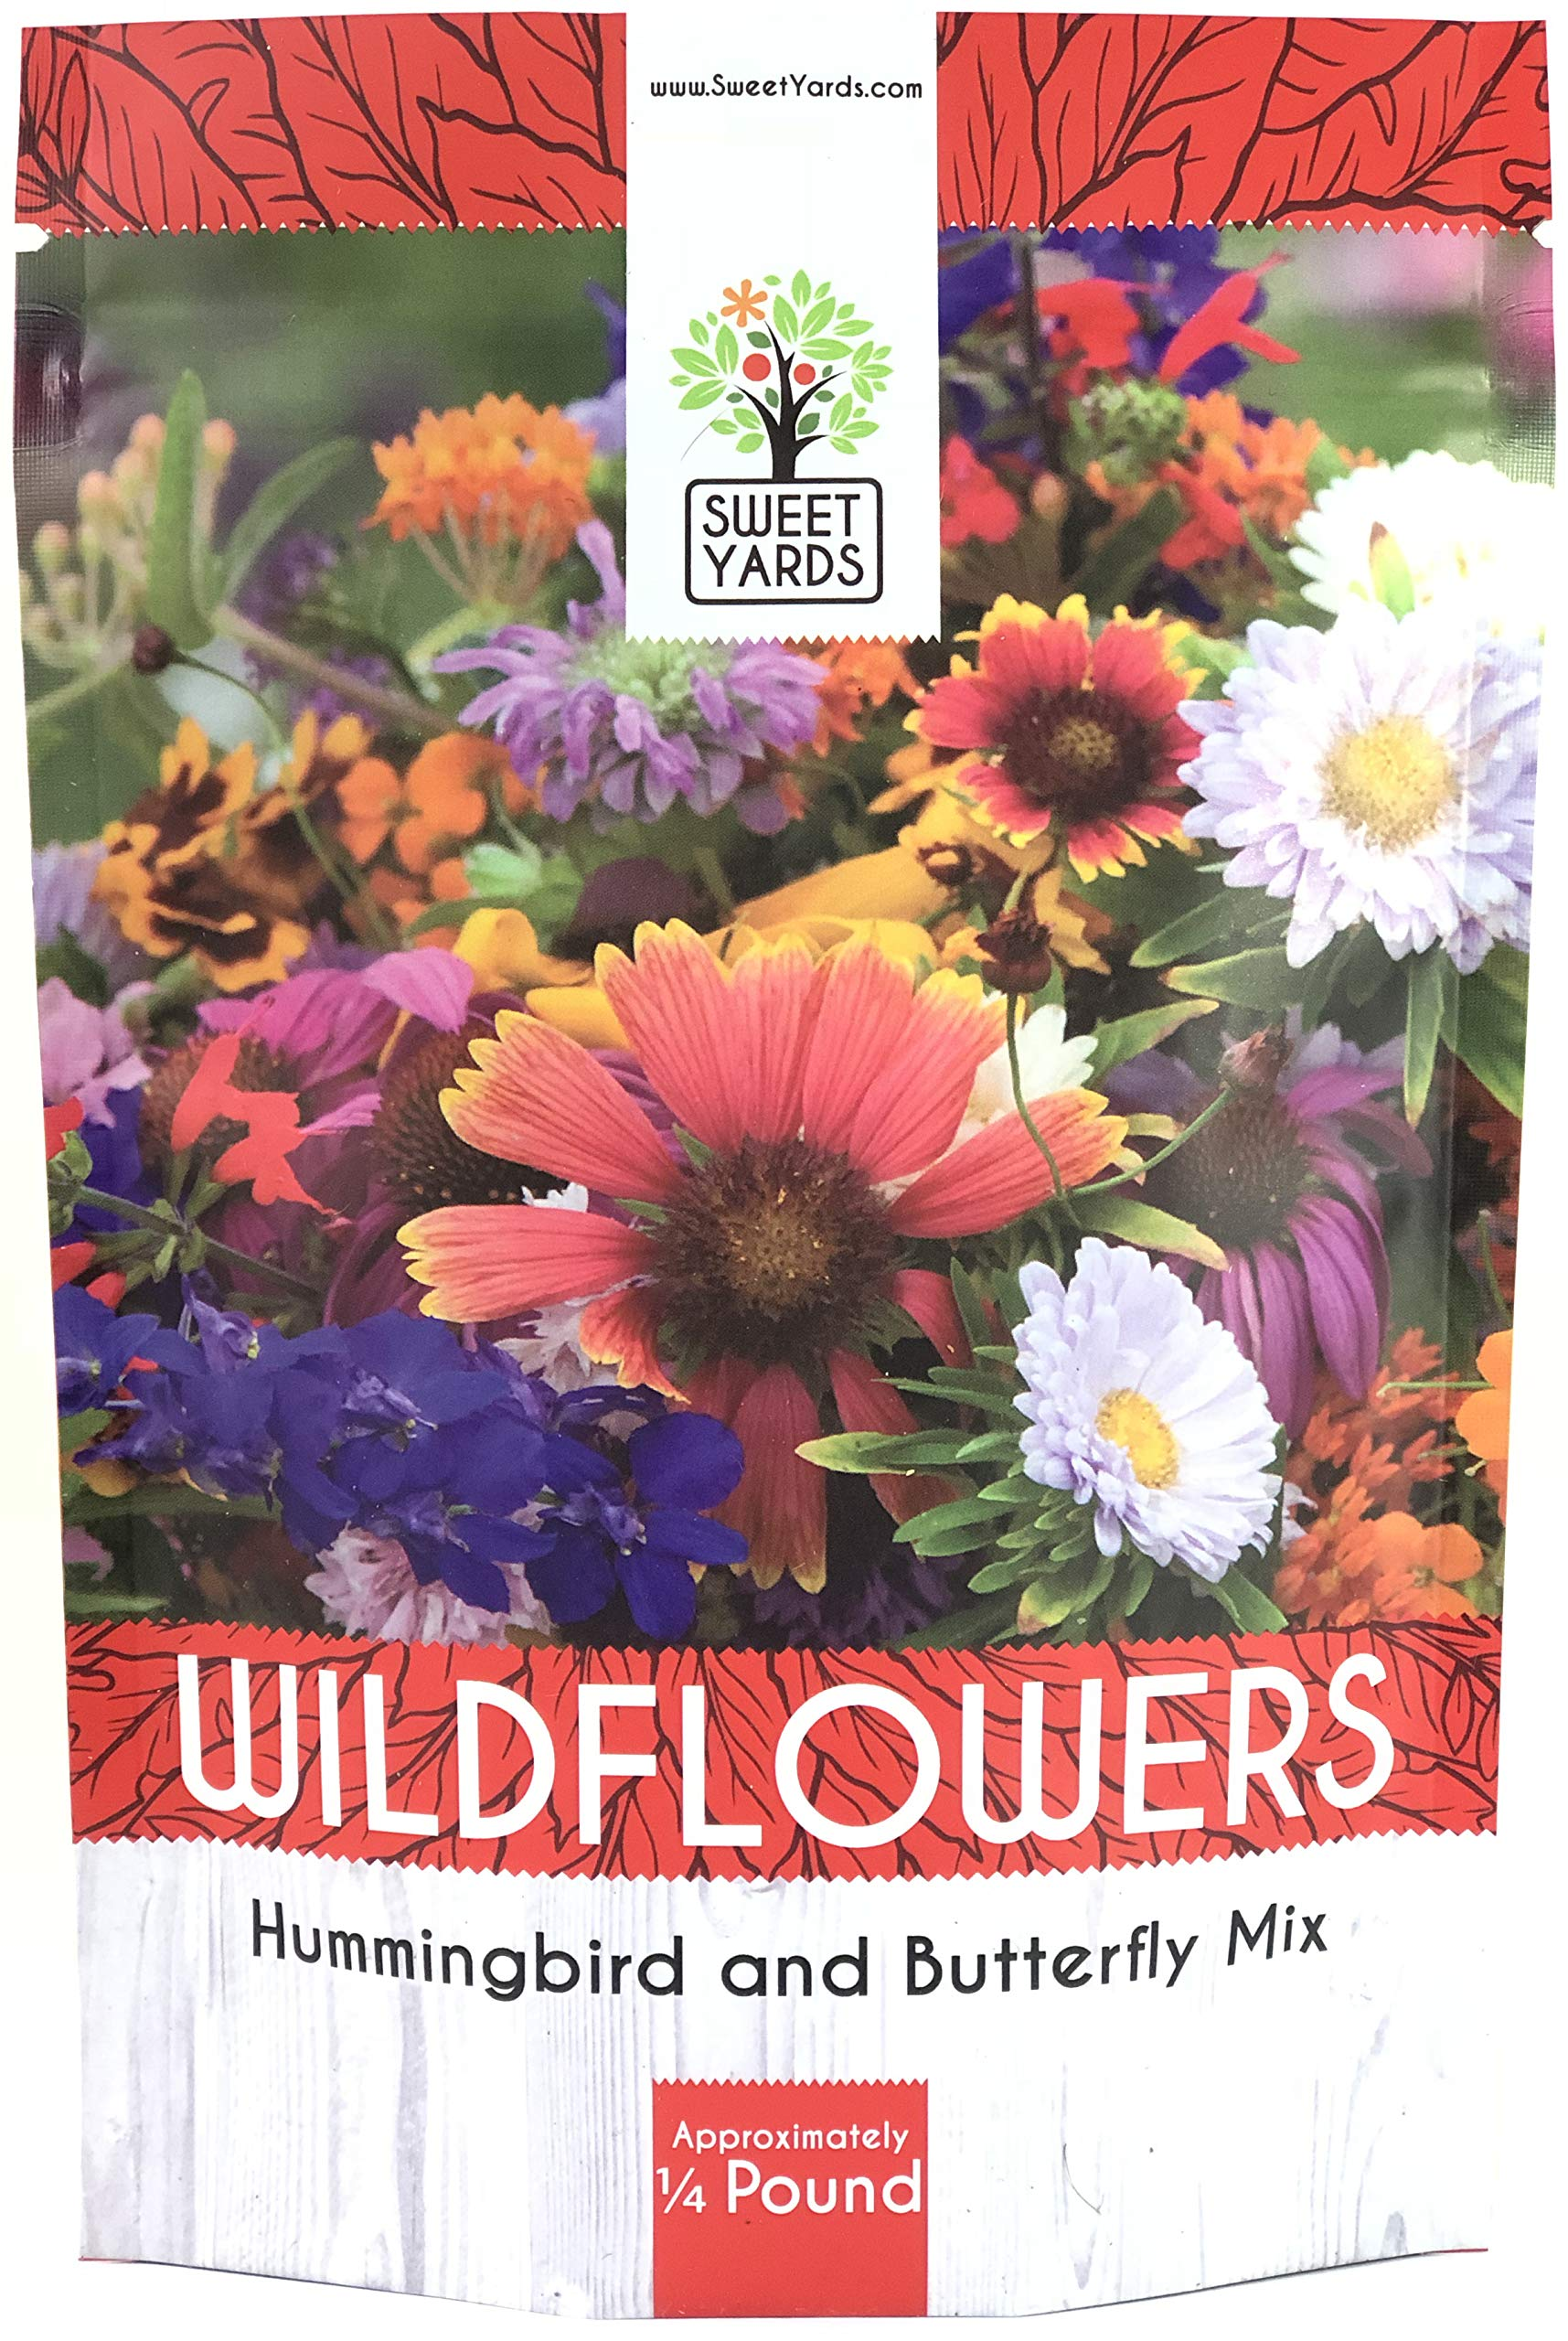 Bulk Wildflower Seeds Butterfly and Humming Bird Mix - 1/4 Pound Bag - Over 30,000 Open Pollinated Annual and Perennial Seeds